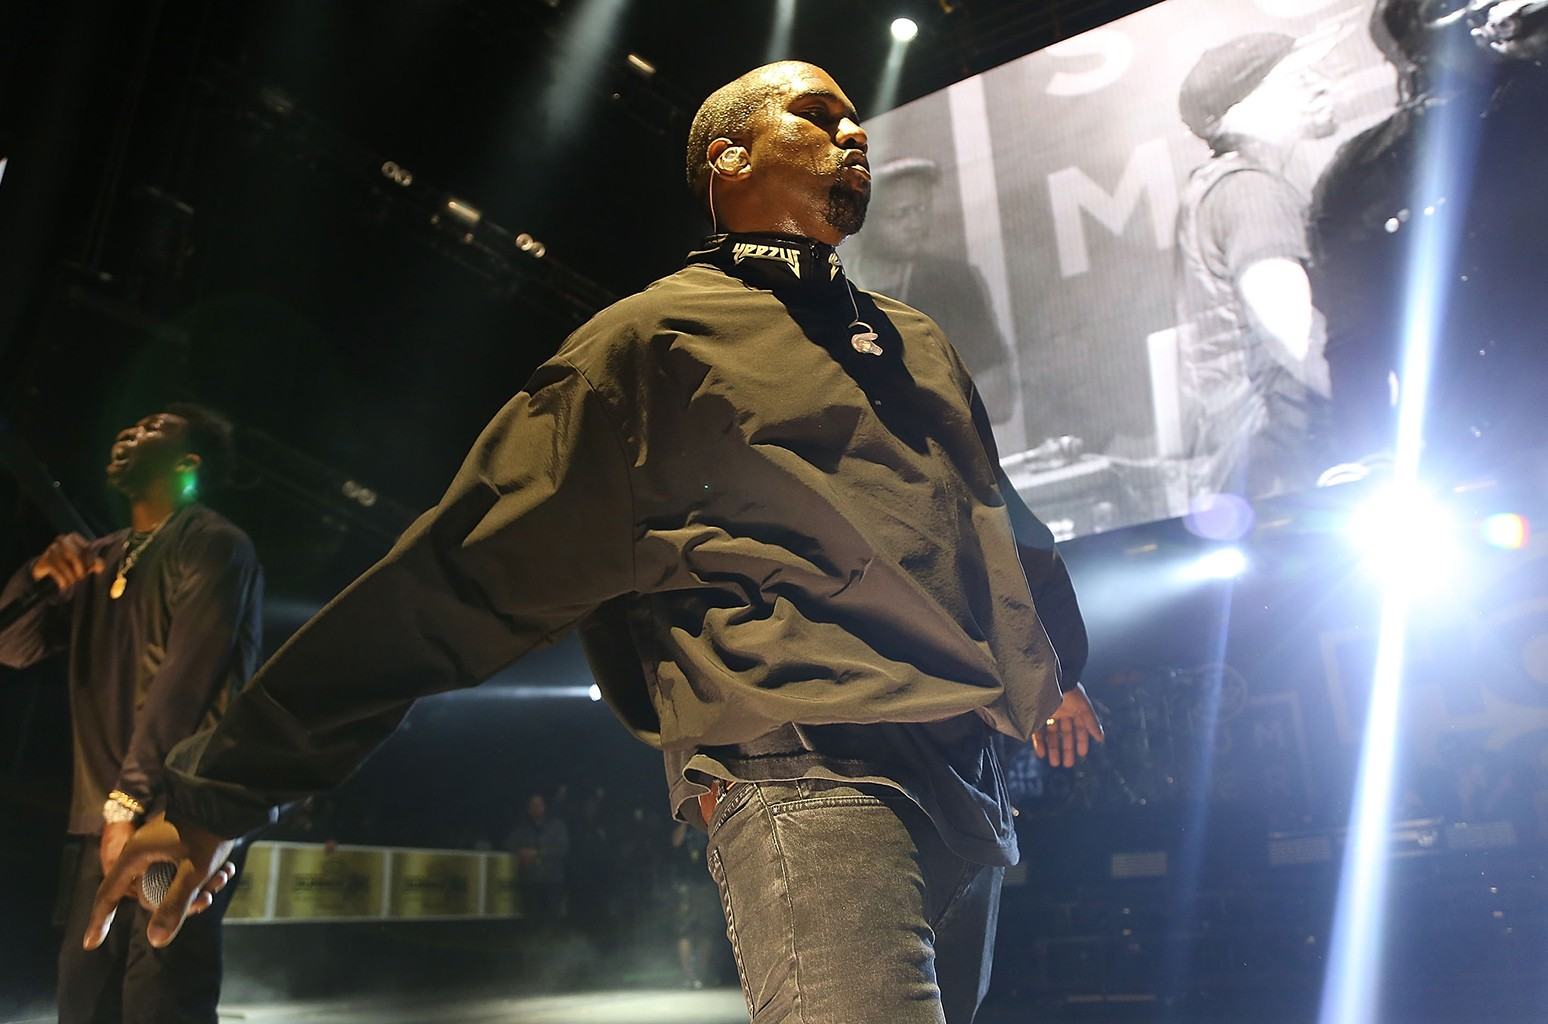 Kanye West performs at the 2016 Hot 97 Summer Jam